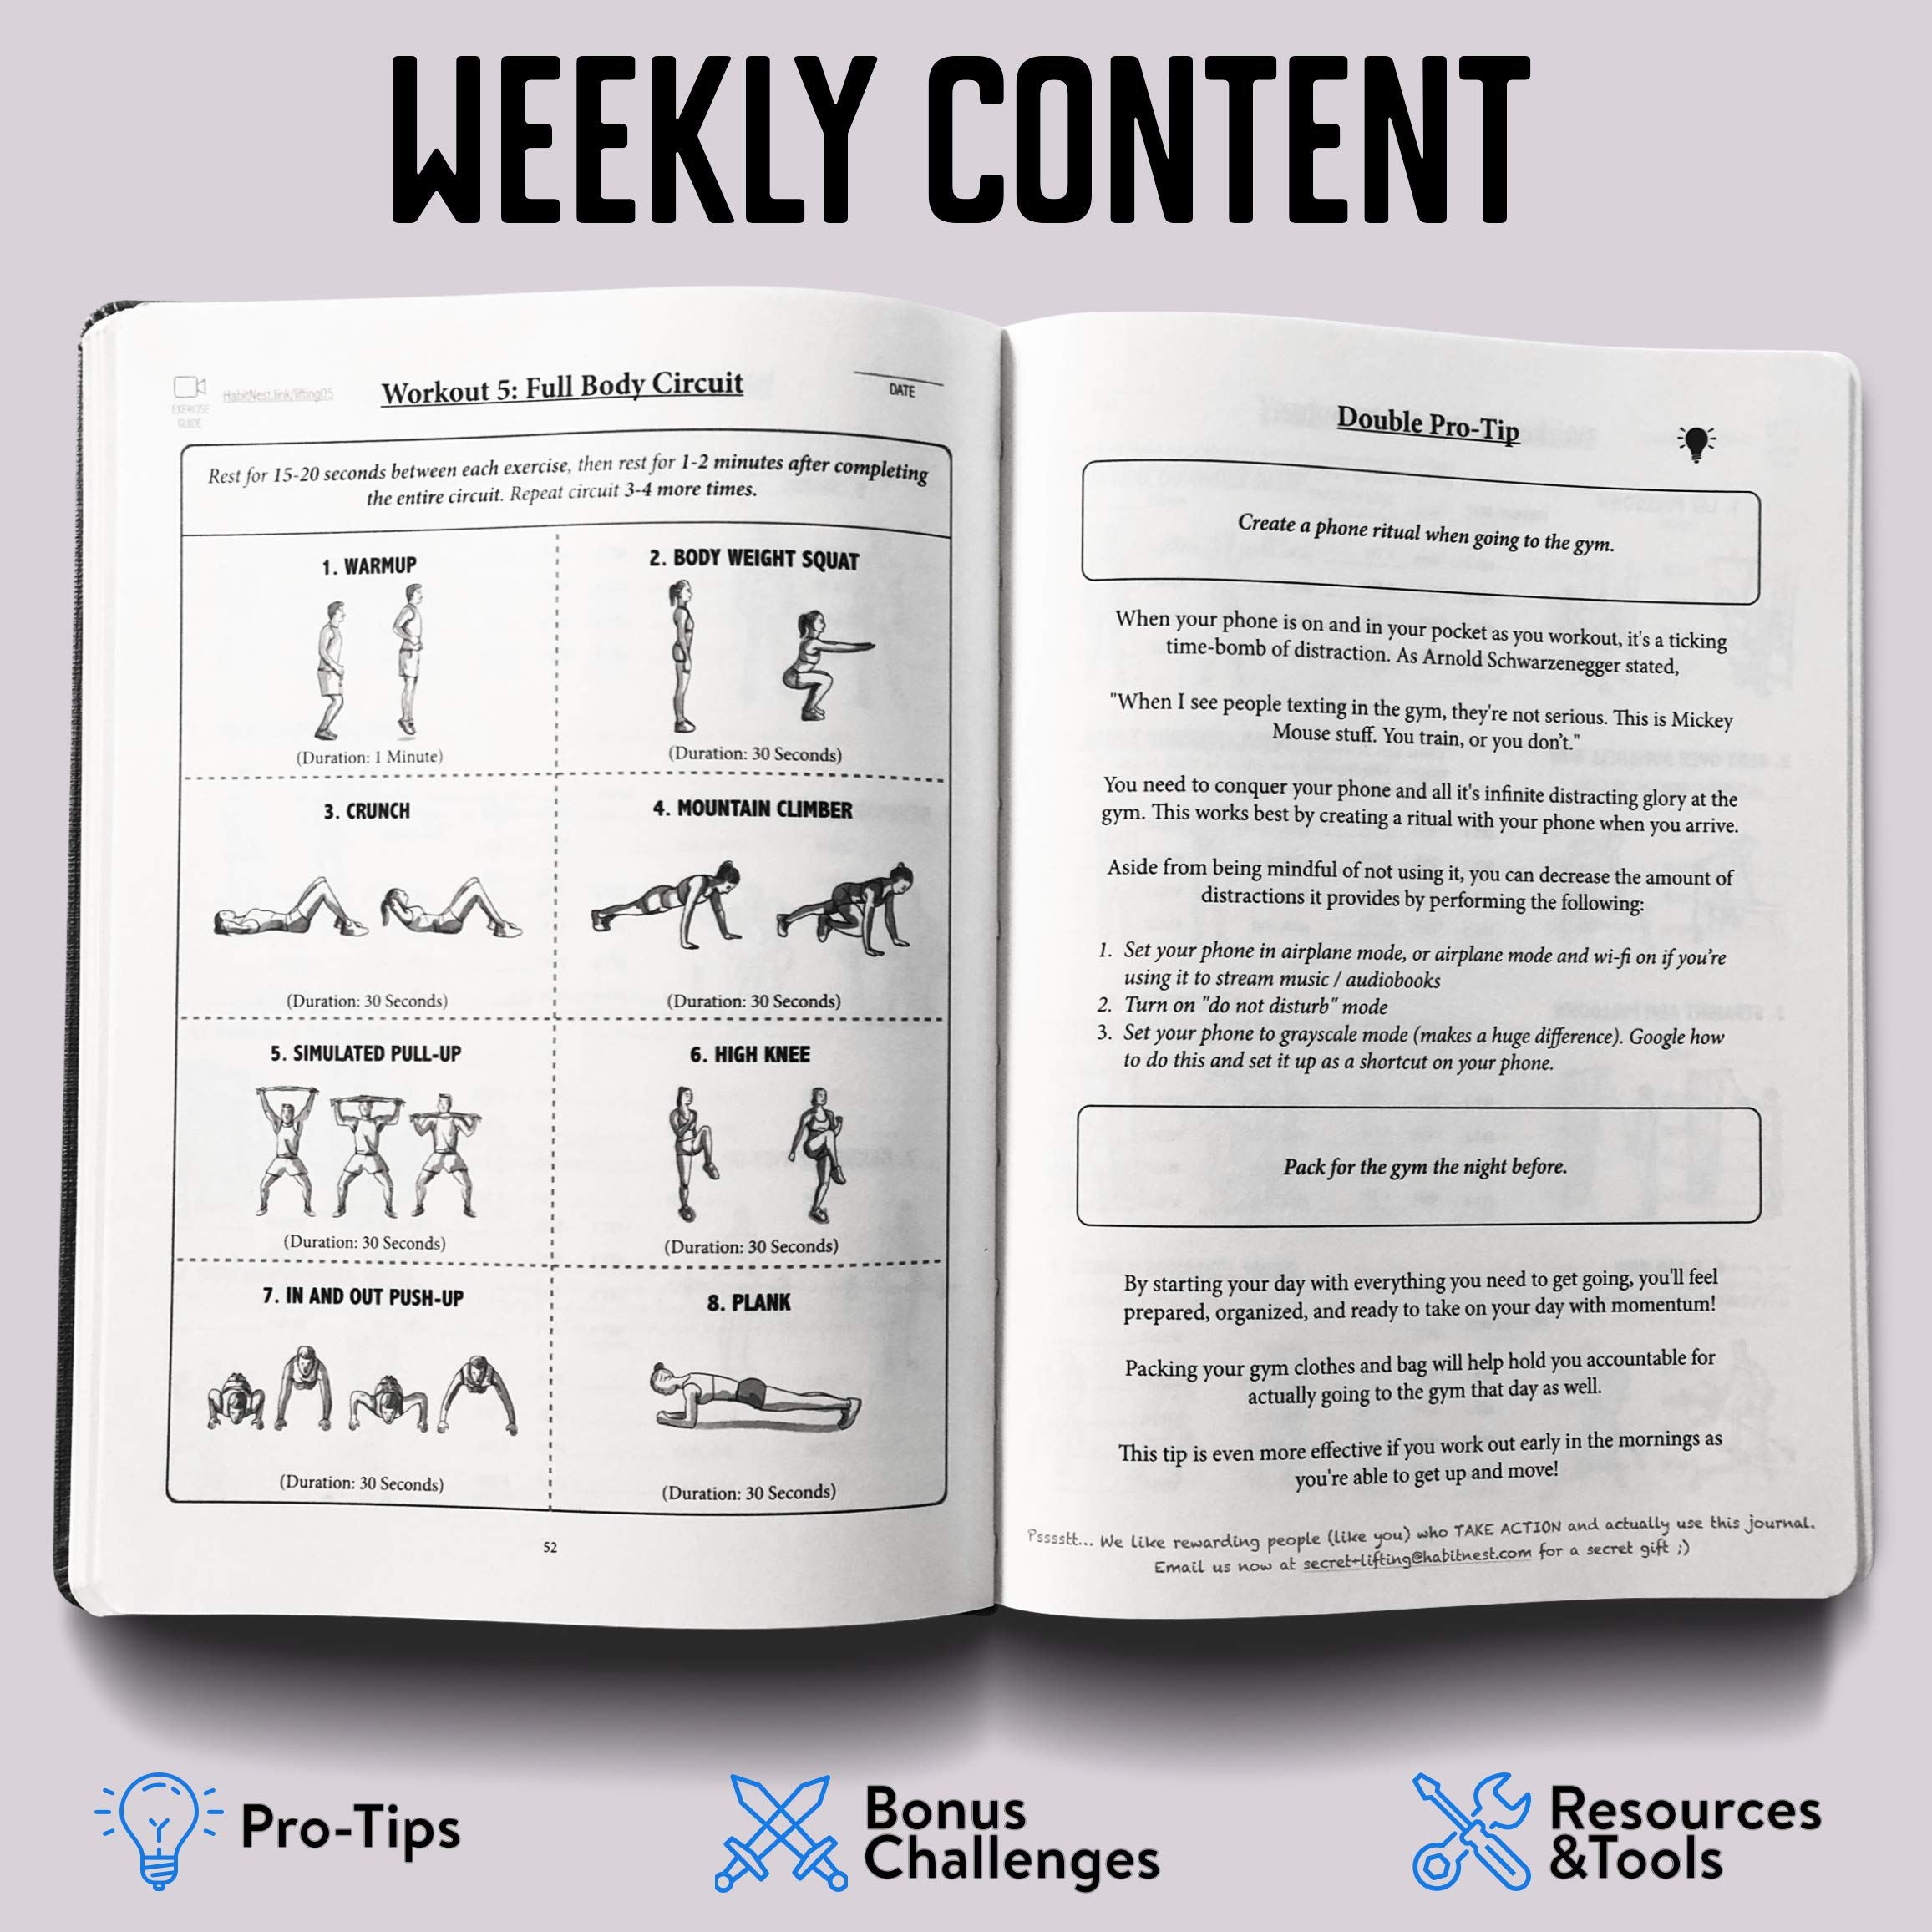 Habit Nest The Weightlifting Gym Buddy Journal. A 12-Week Personal Training Program in A Journal, with Workout and Exercise Journal/Log. Your Ultimate Fitness Planner. by Habit Nest (Image #4)